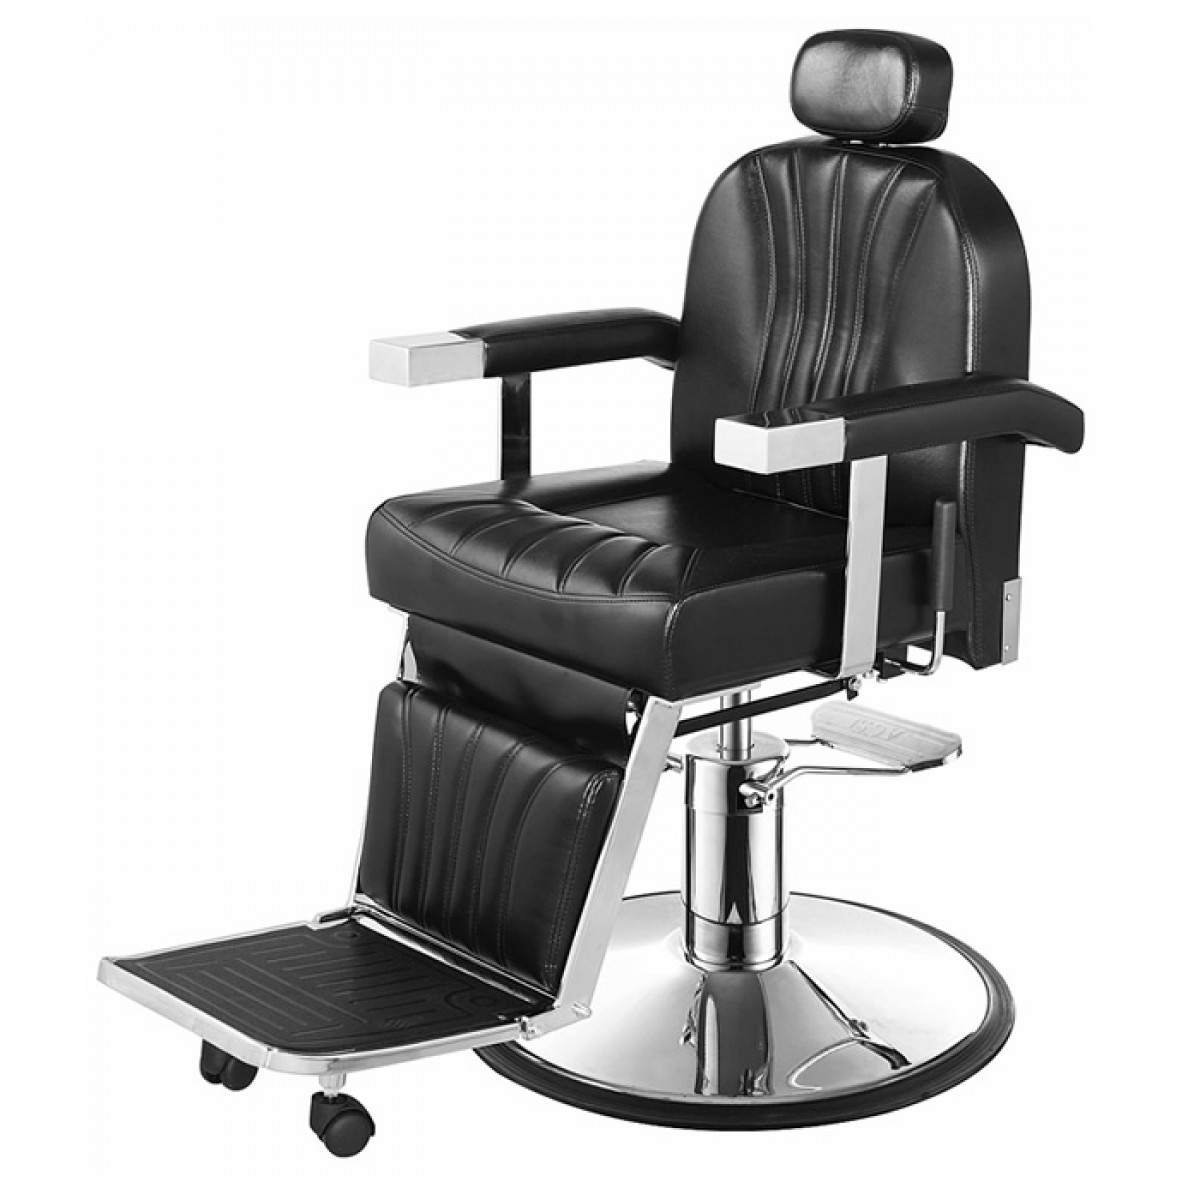 Quot Cicero Quot Salon Barber Chair With Heavy Duty Hydraulic Pump